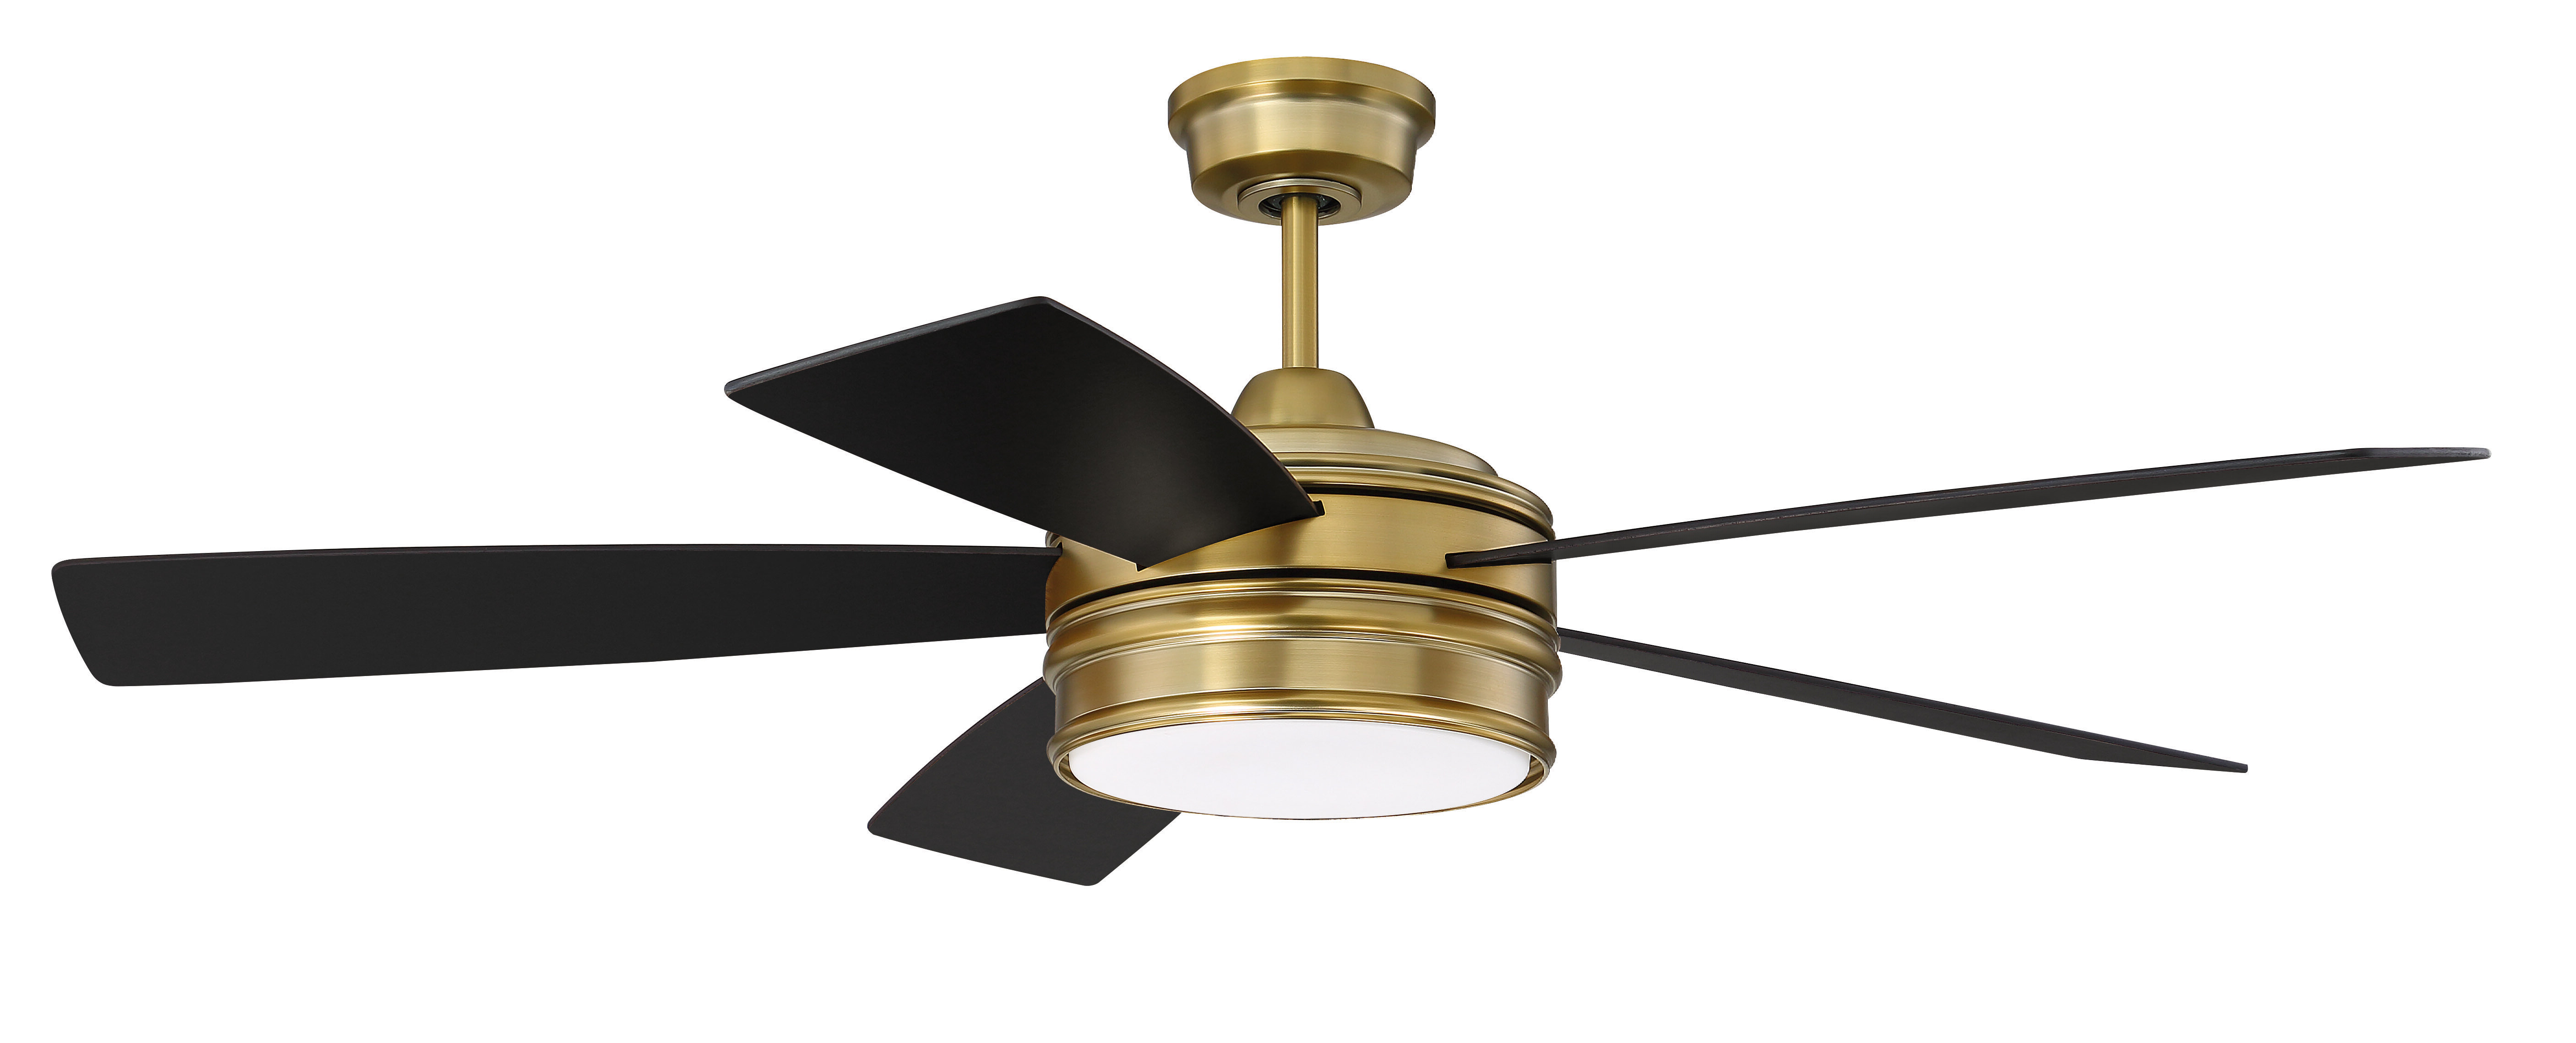 "52"" Winchcombe 5 Blade Led Ceiling Fan With Remote Light Kit Regarding Widely Used Cedarton 5 Blade Led Ceiling Fans (View 14 of 20)"